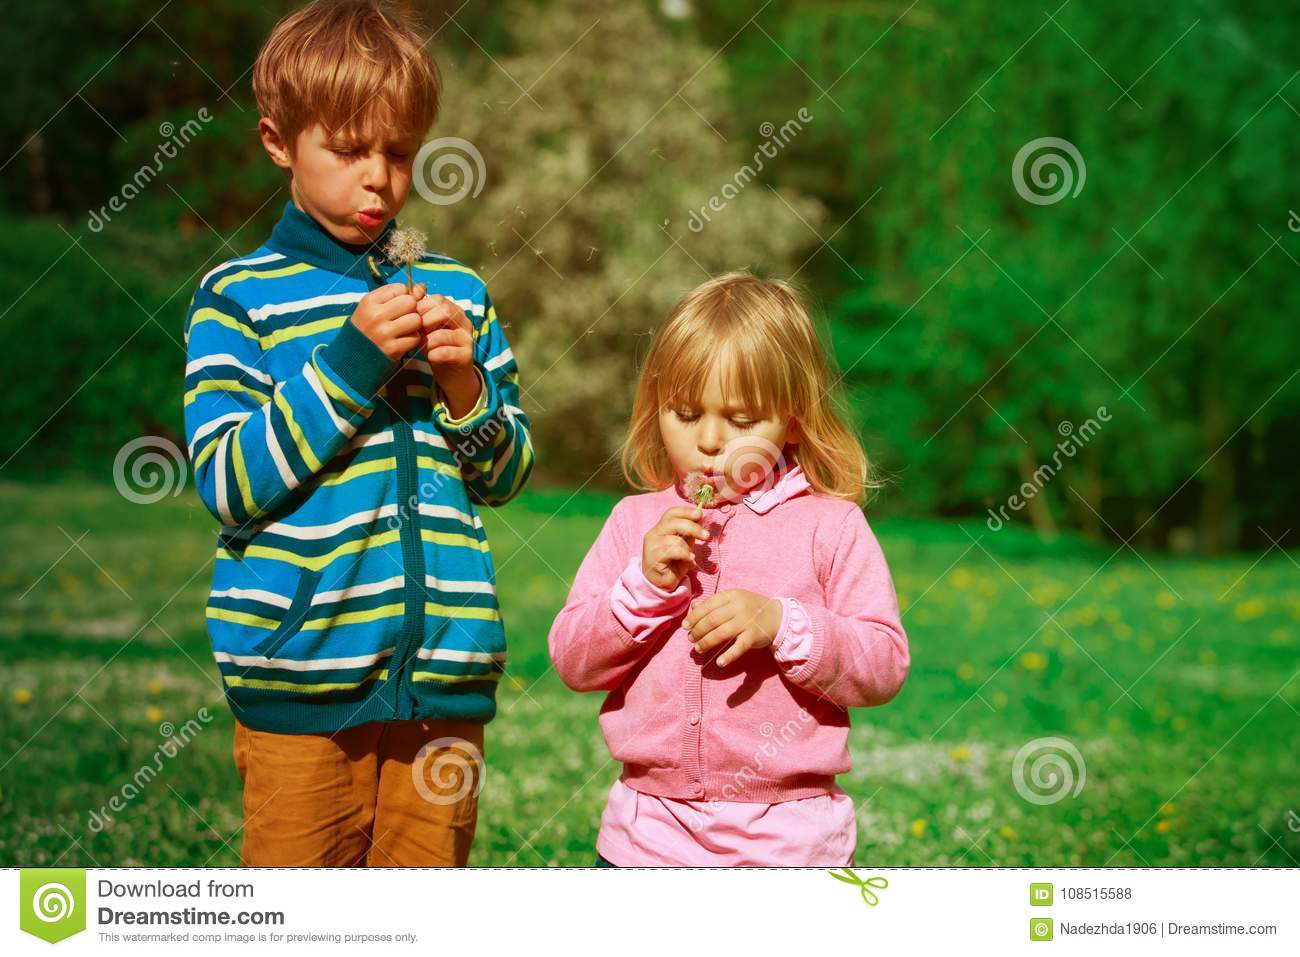 Little boy and girl blow dandelions, play in spring nature